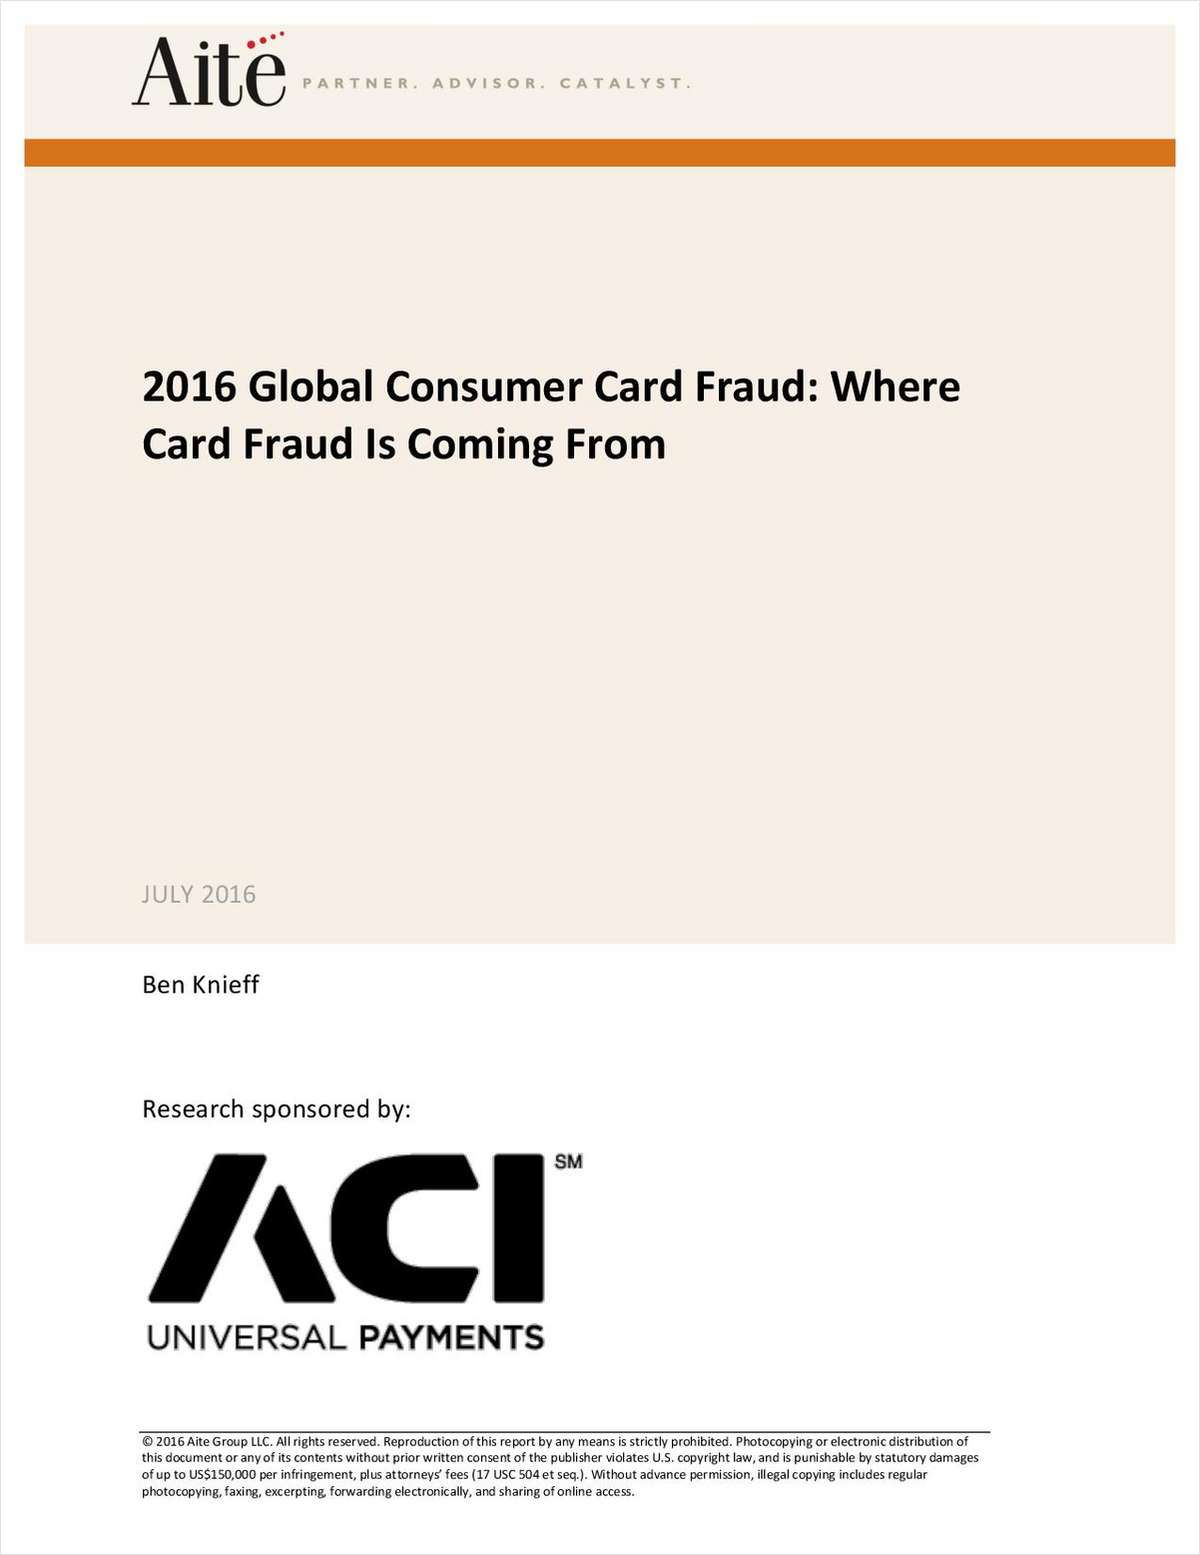 Fraud Survey finds Rising Card Fraud and Eroding Consumer Trust